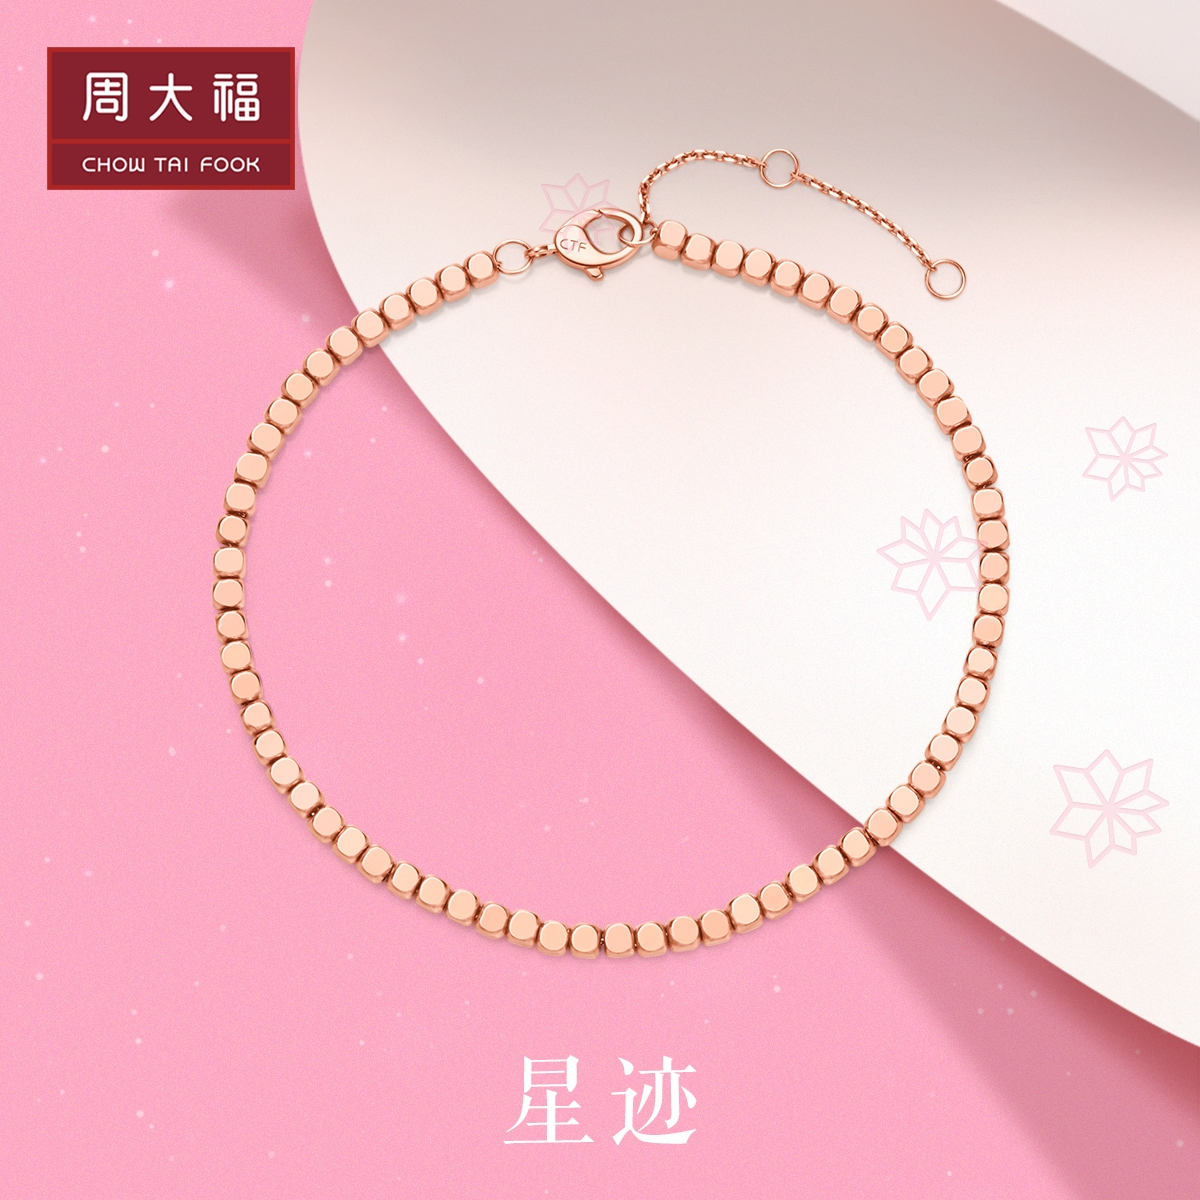 Order Chow Tai Fook Jewelry Simple and Fashion 18K Gold Color Gold Bracelet E124746 Selection